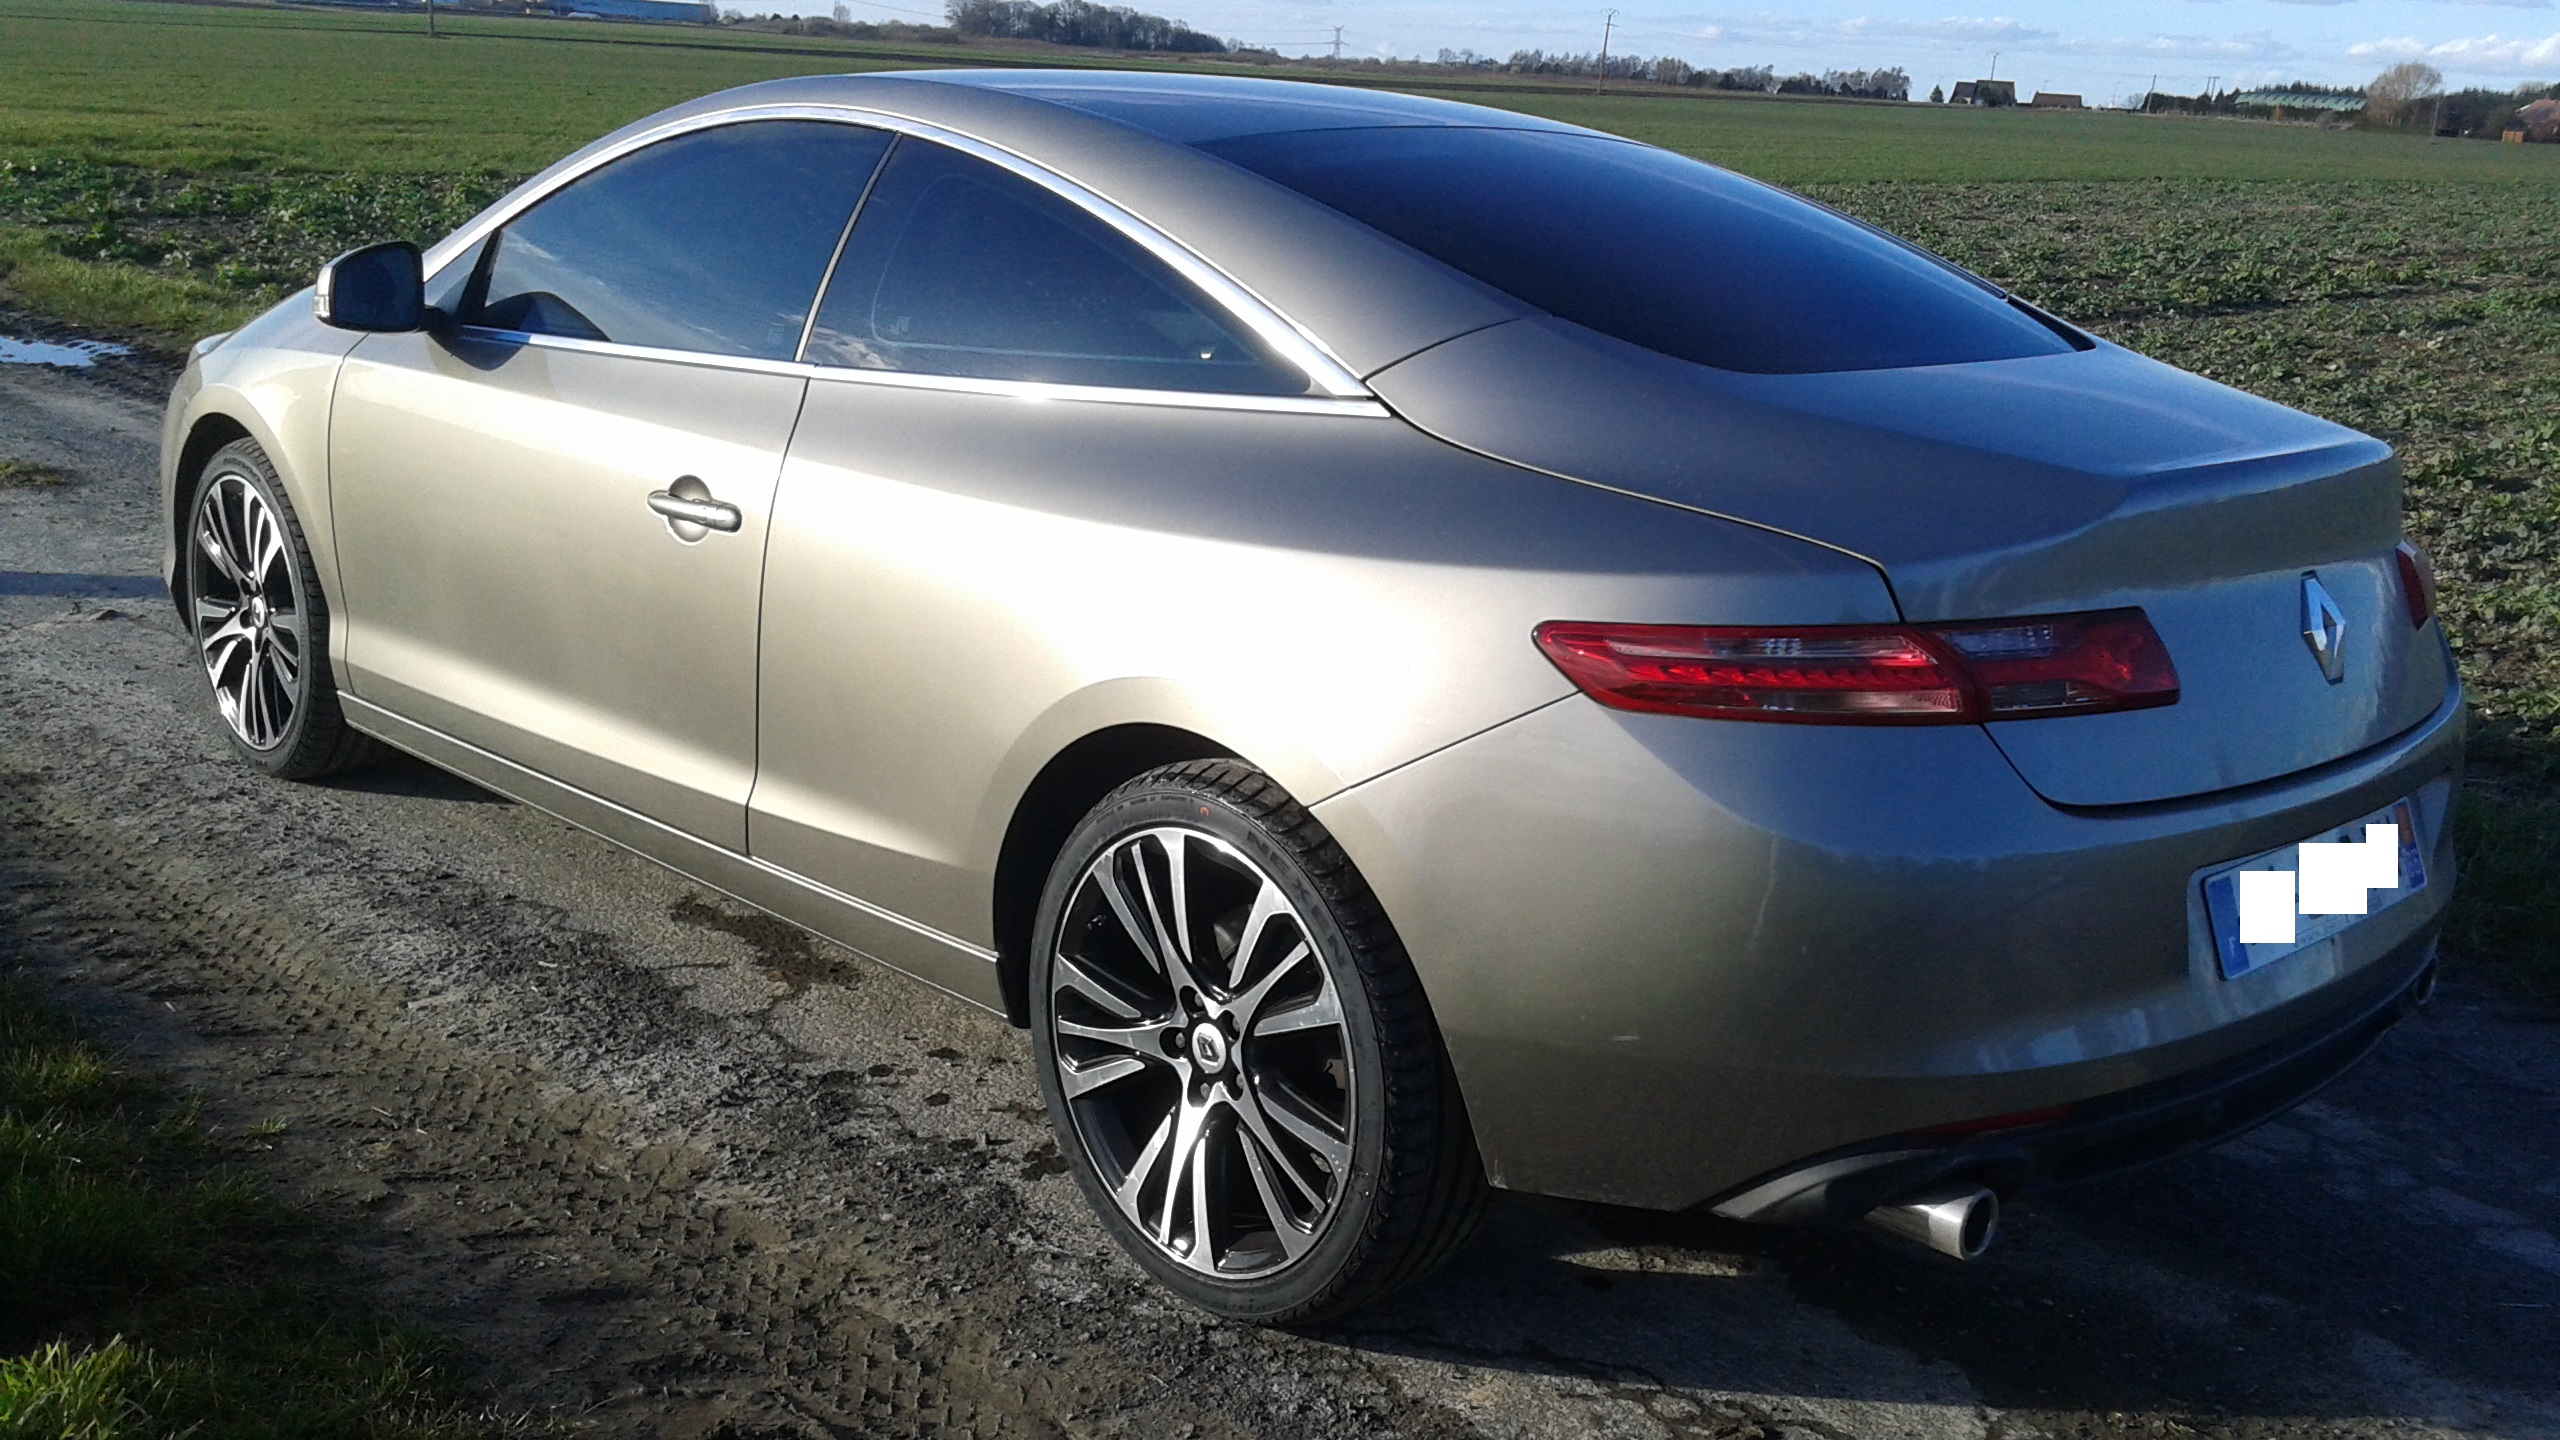 [nathanjo] Laguna III coupé initiale 3.0 dCi 235 - Page 4 20160304170302